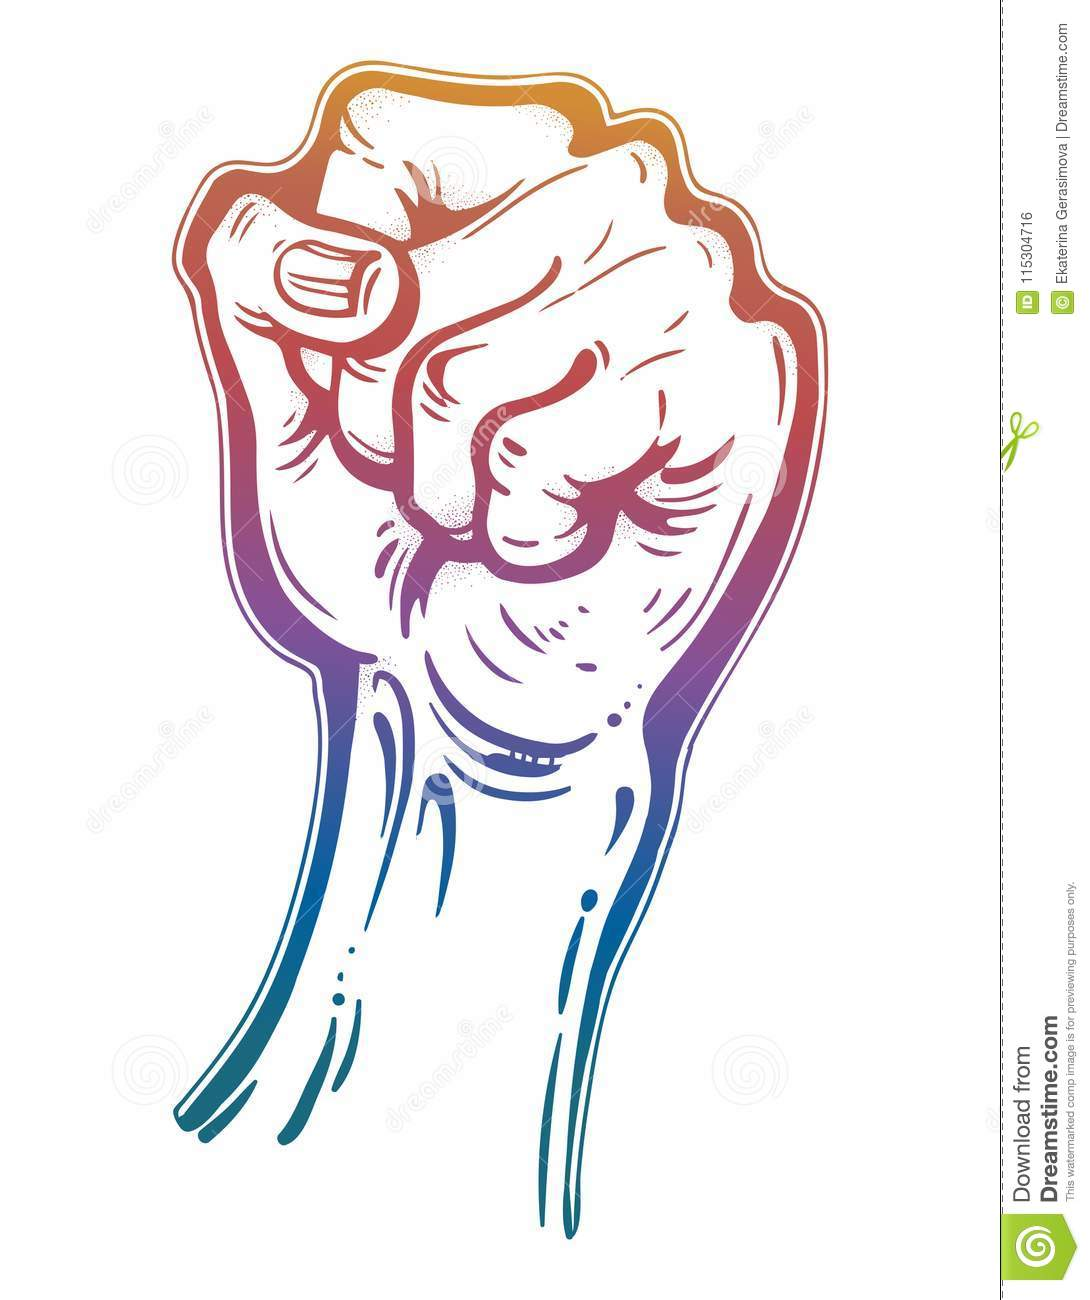 Raised Male Hand As A Fist Power Gesture Stock Vector